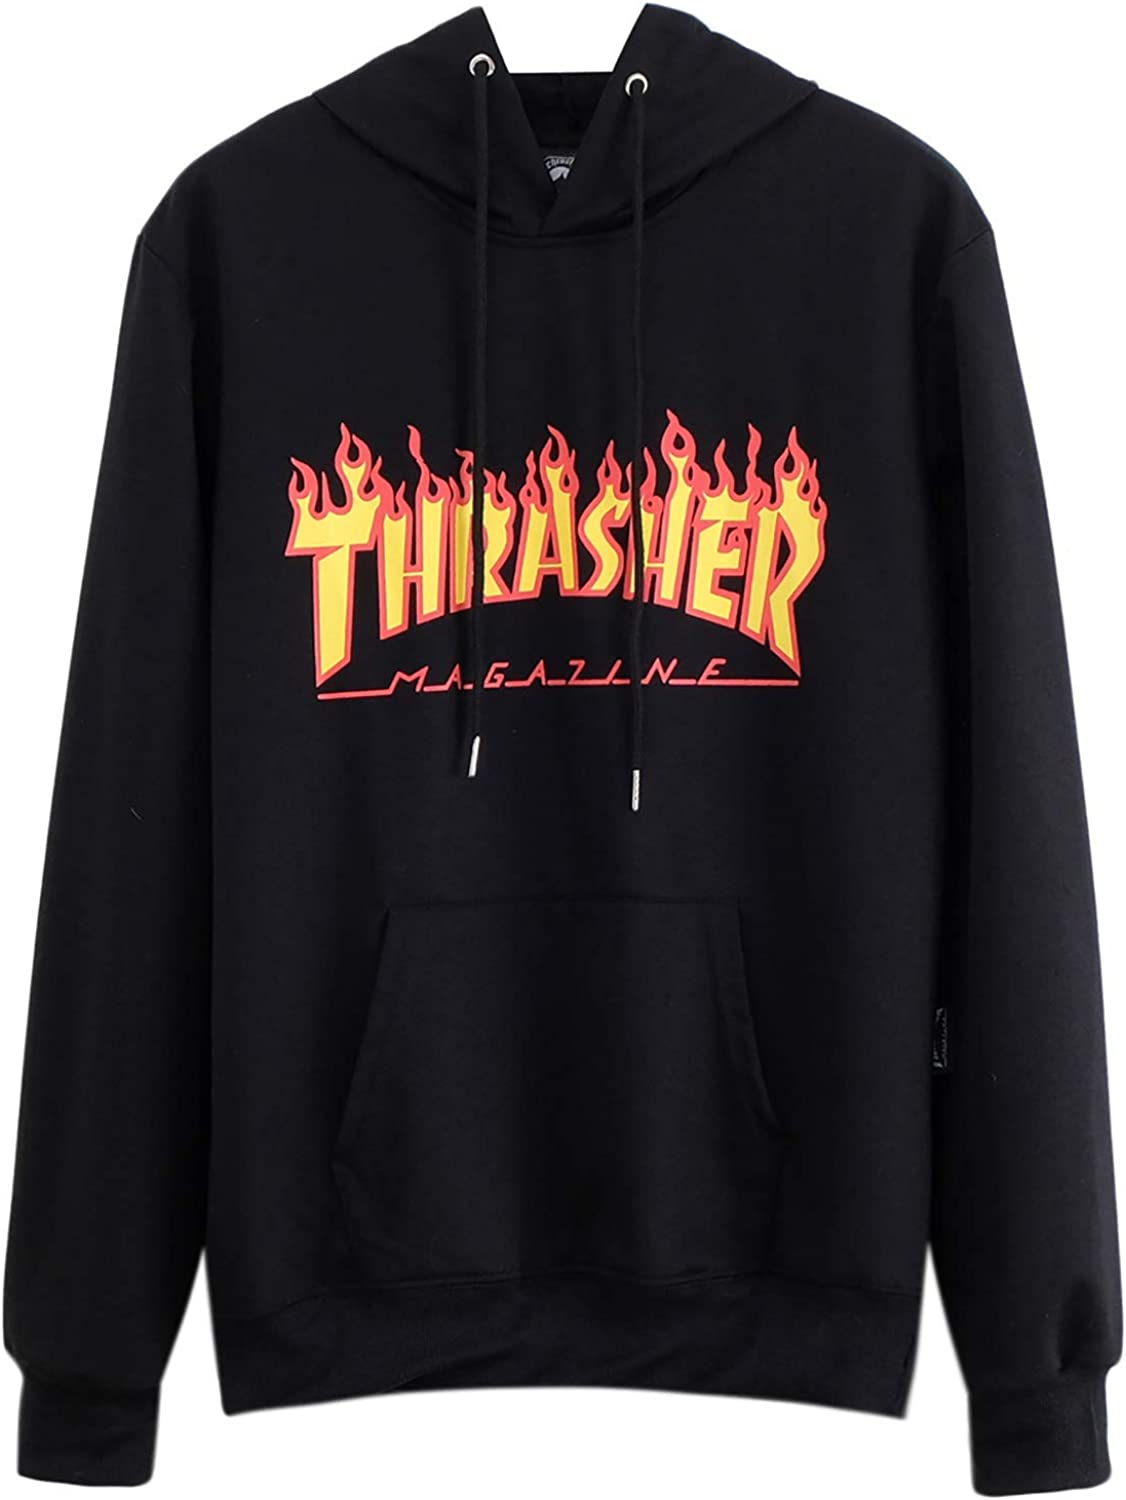 Thrasher Flame Magazine Hoodies Letter Print Hooded Pullover Unisex Sweatshirt with Pocket